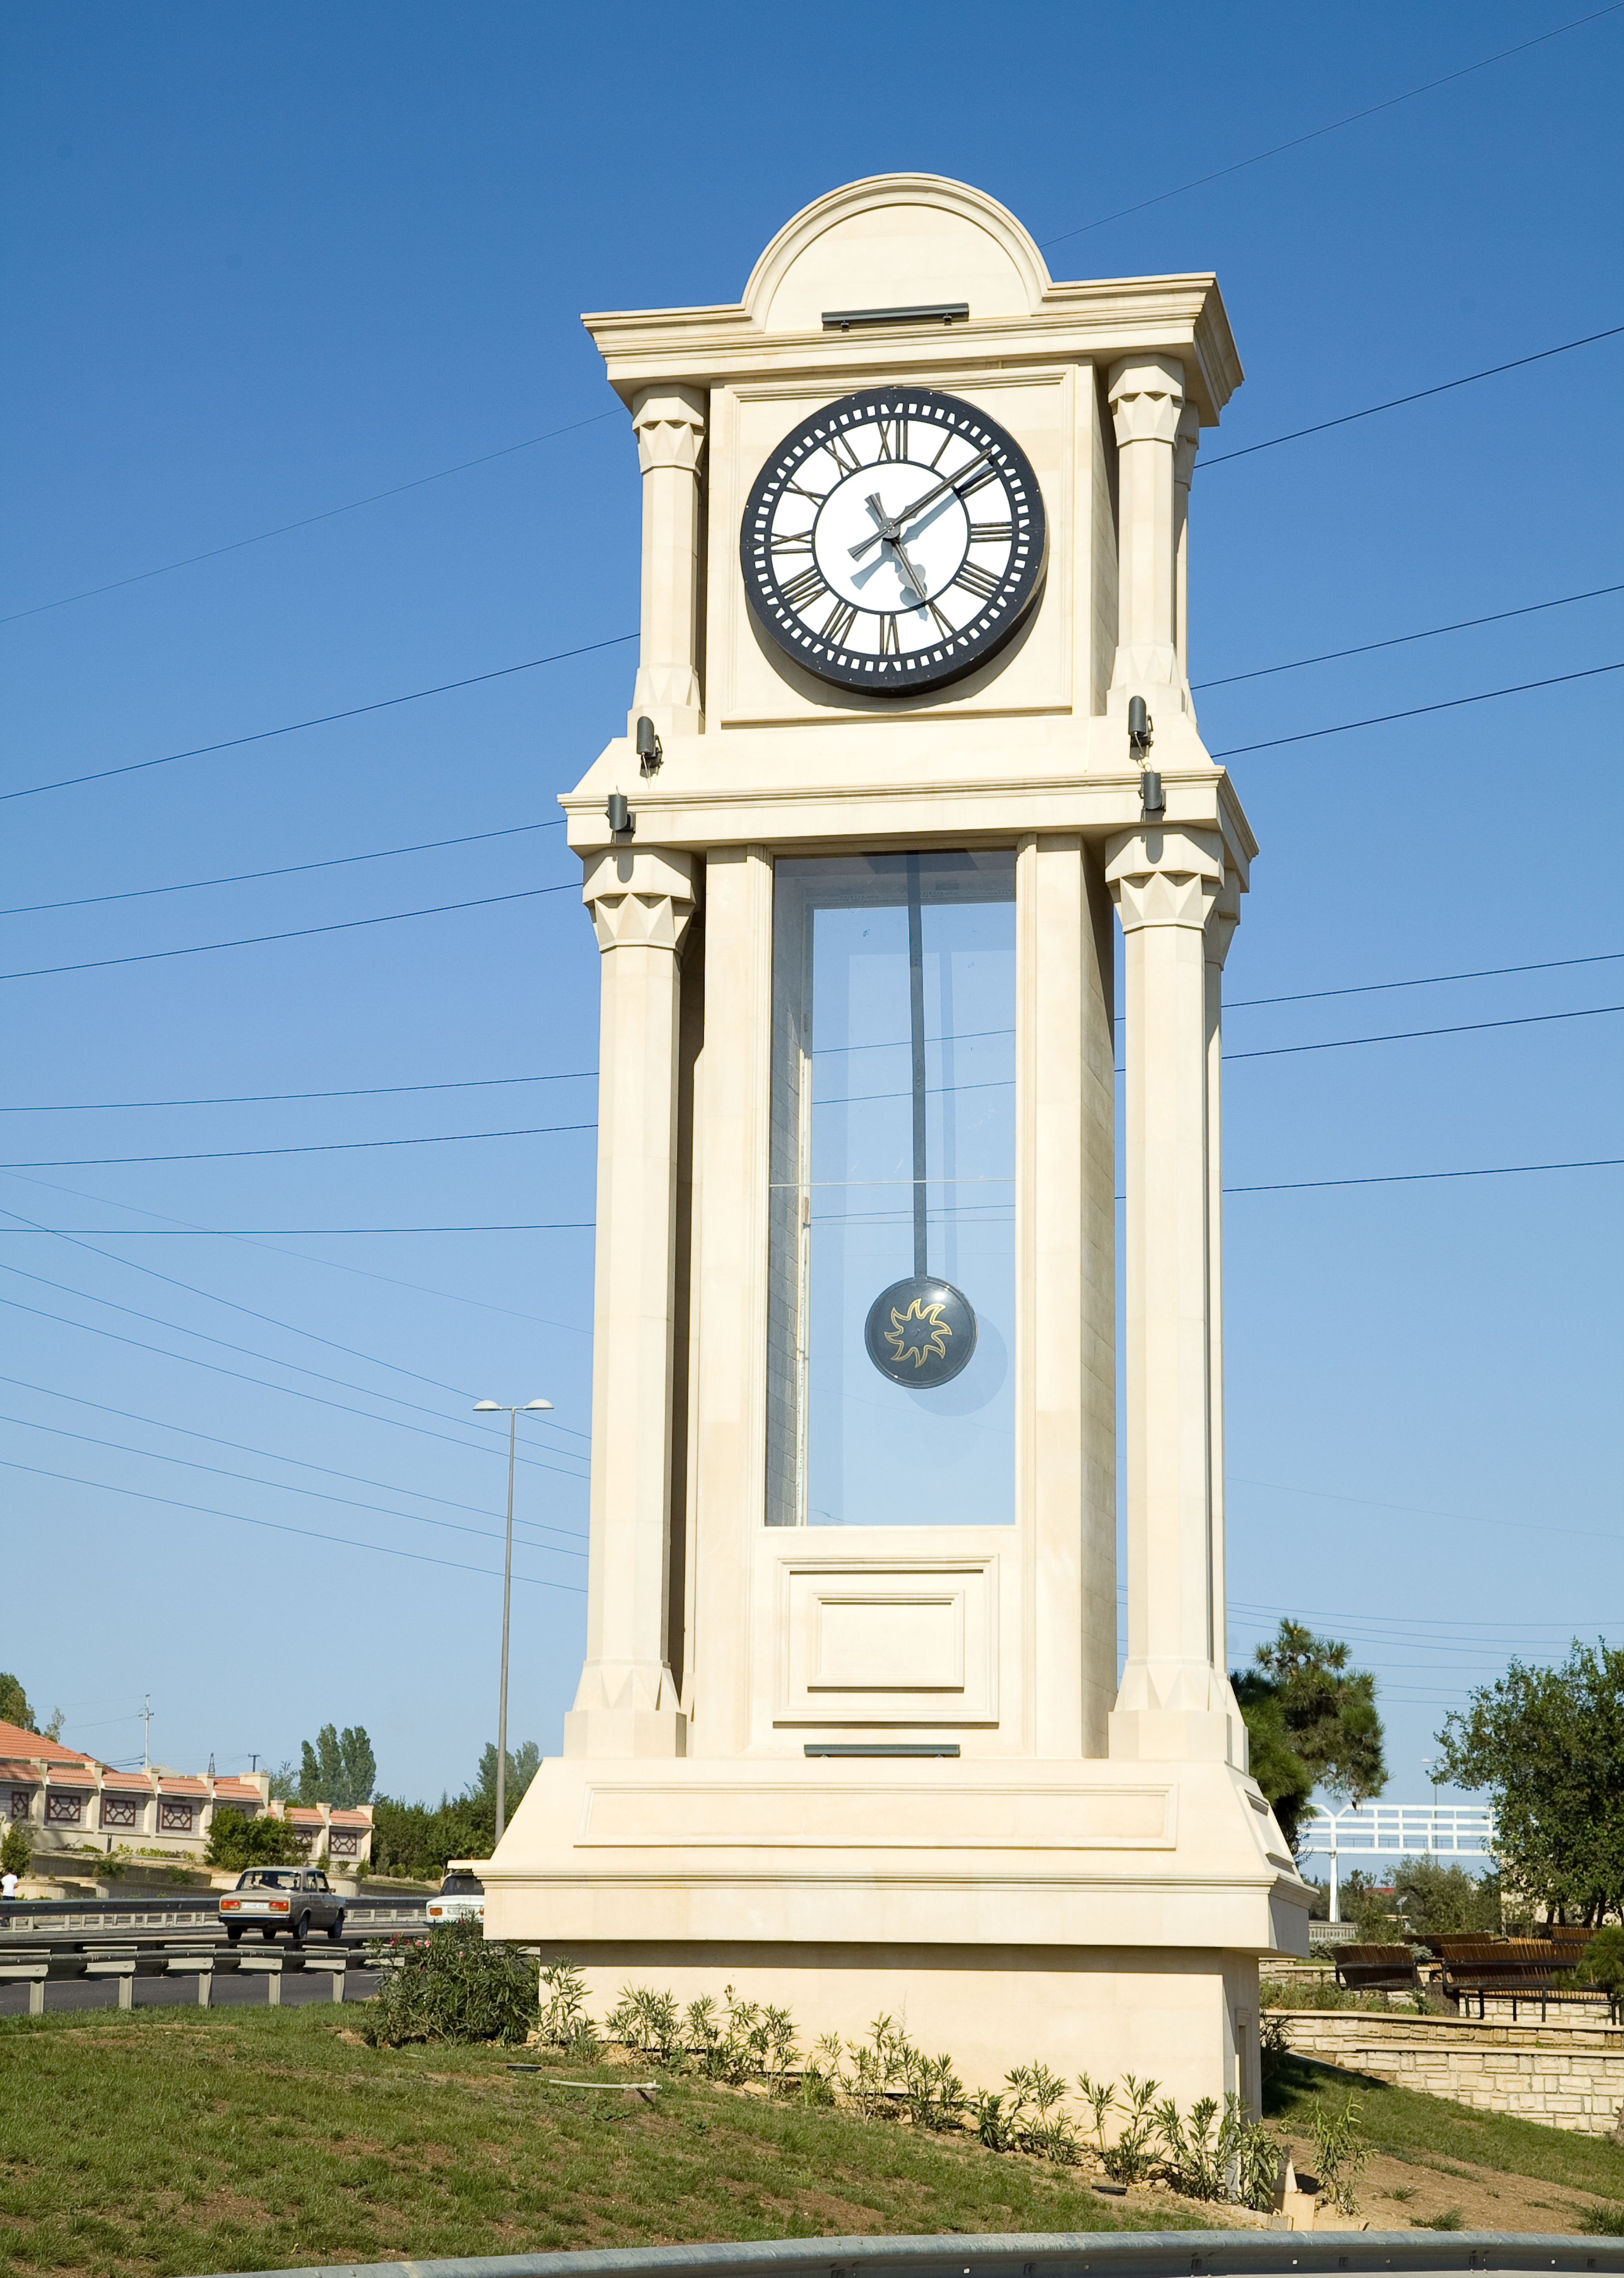 Worlds largest Grandfather clock